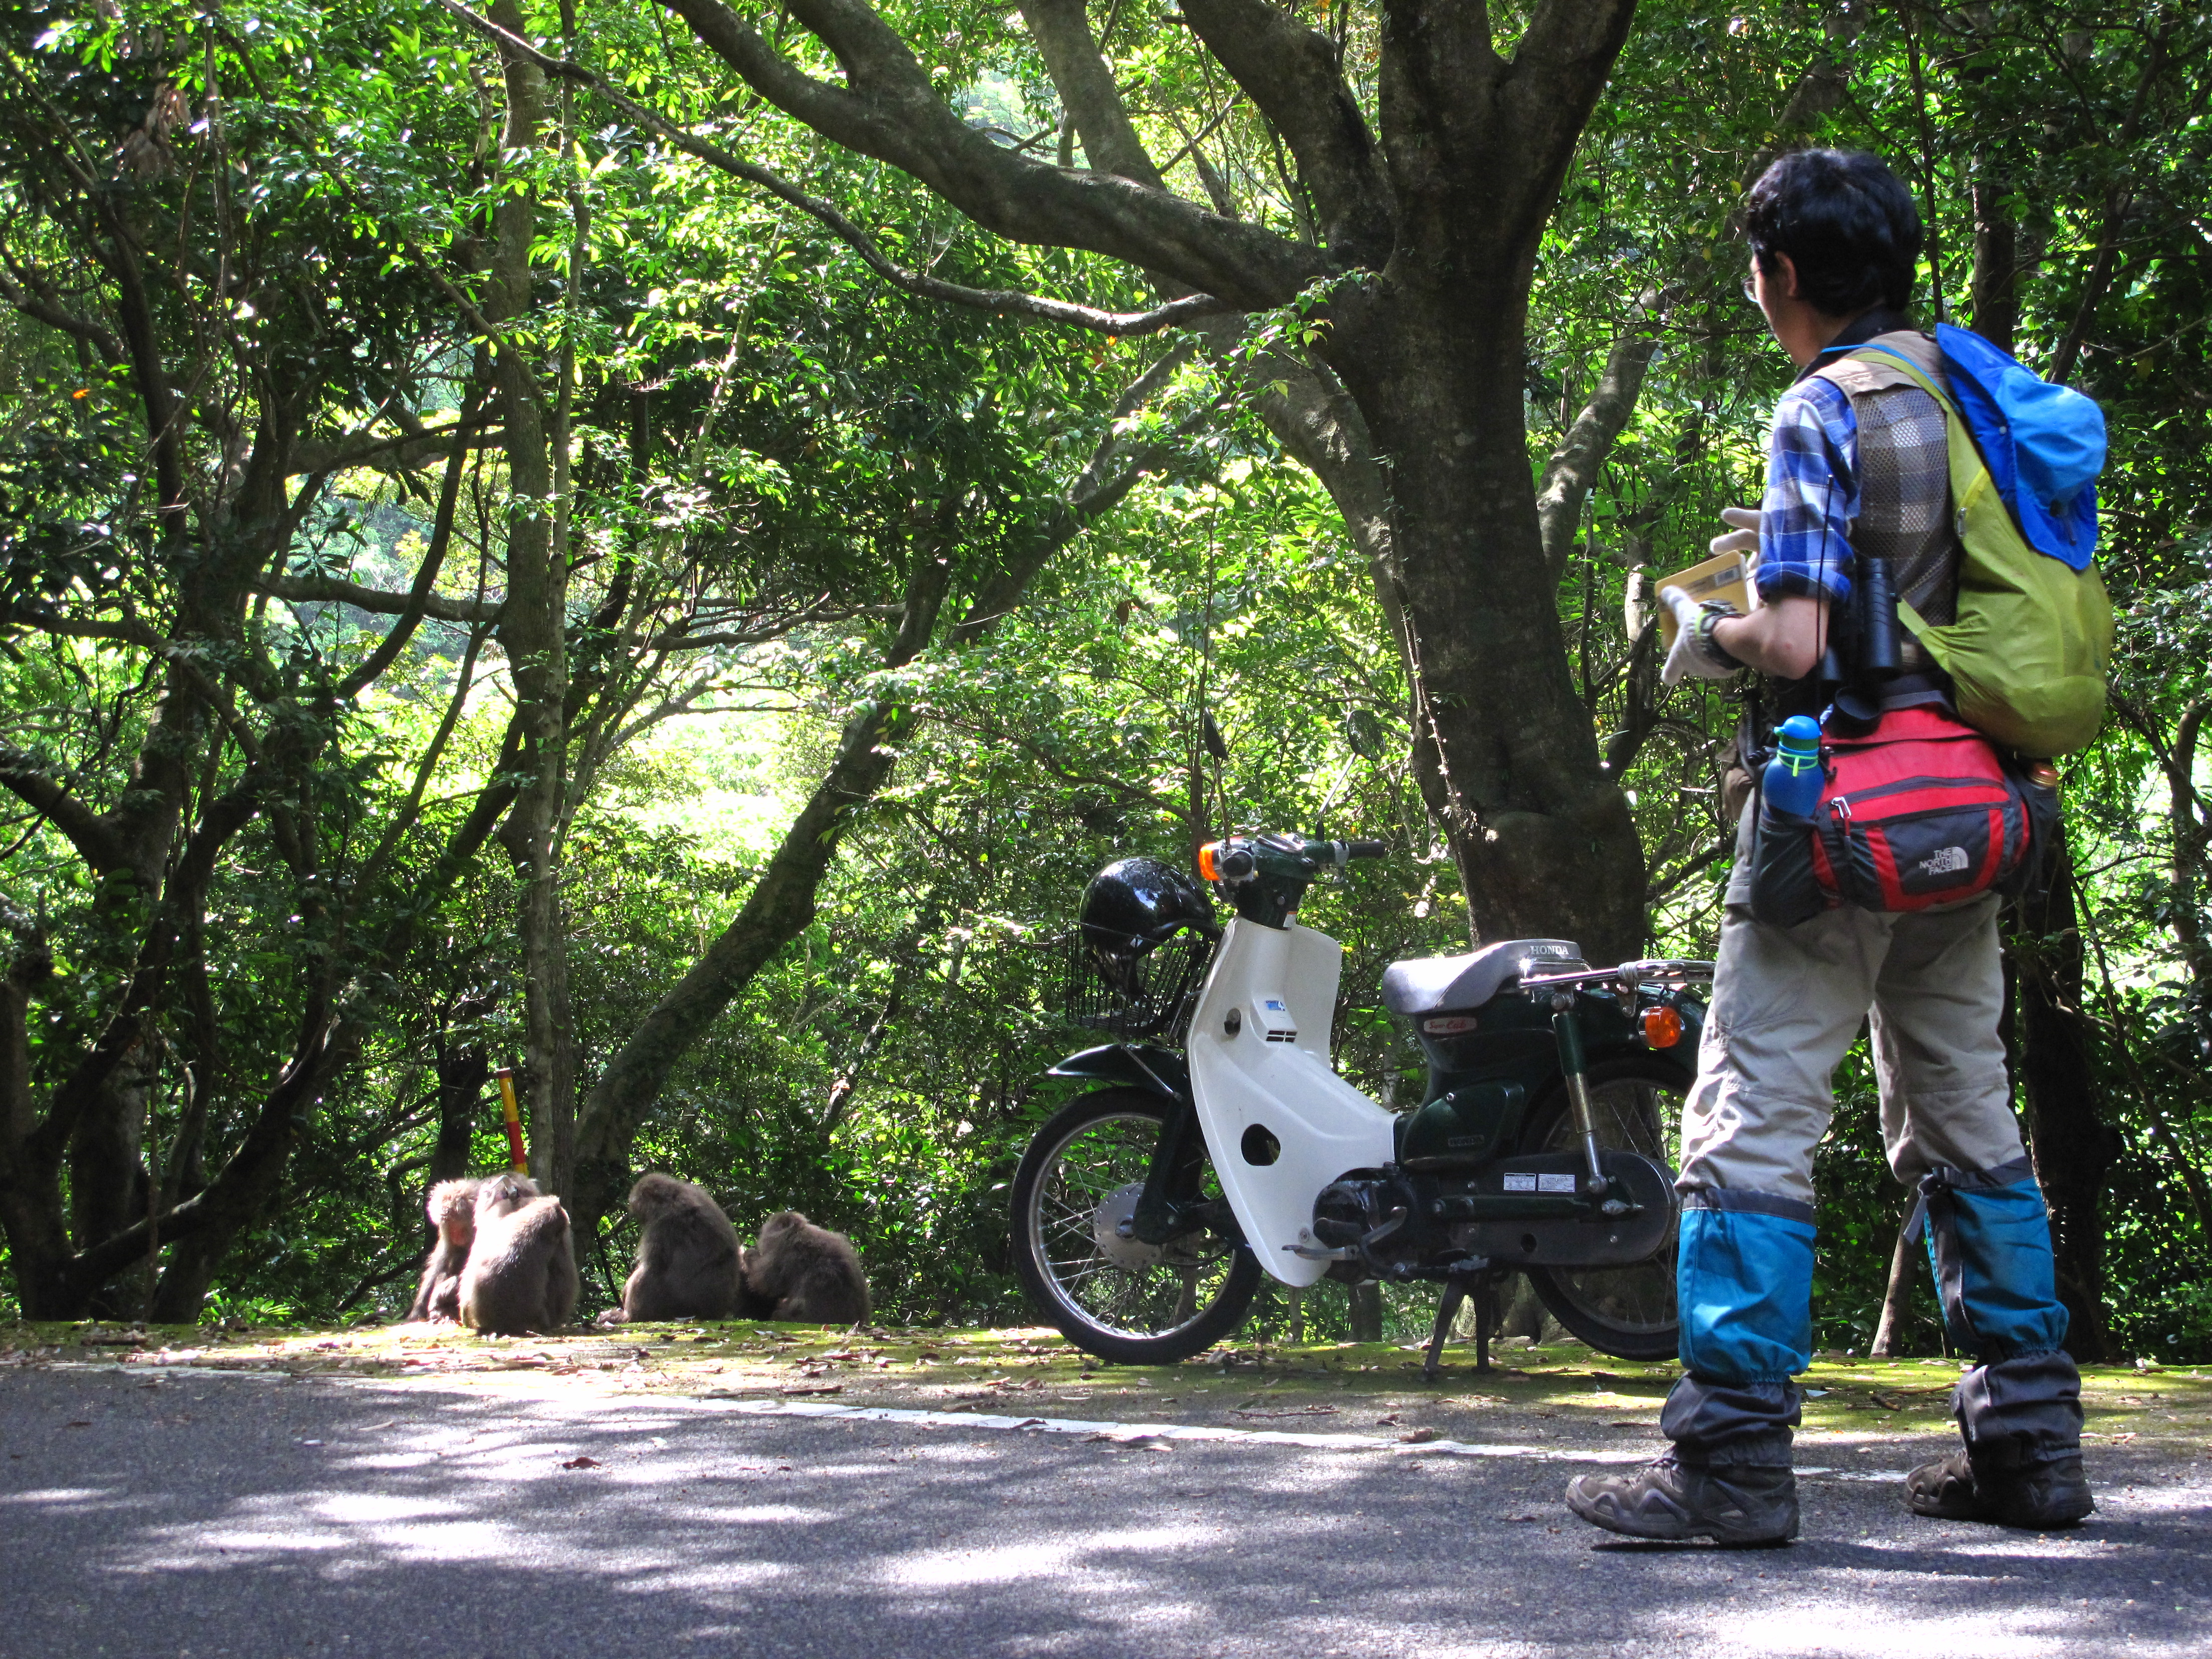 Working with macaques in Yakushima, Japan